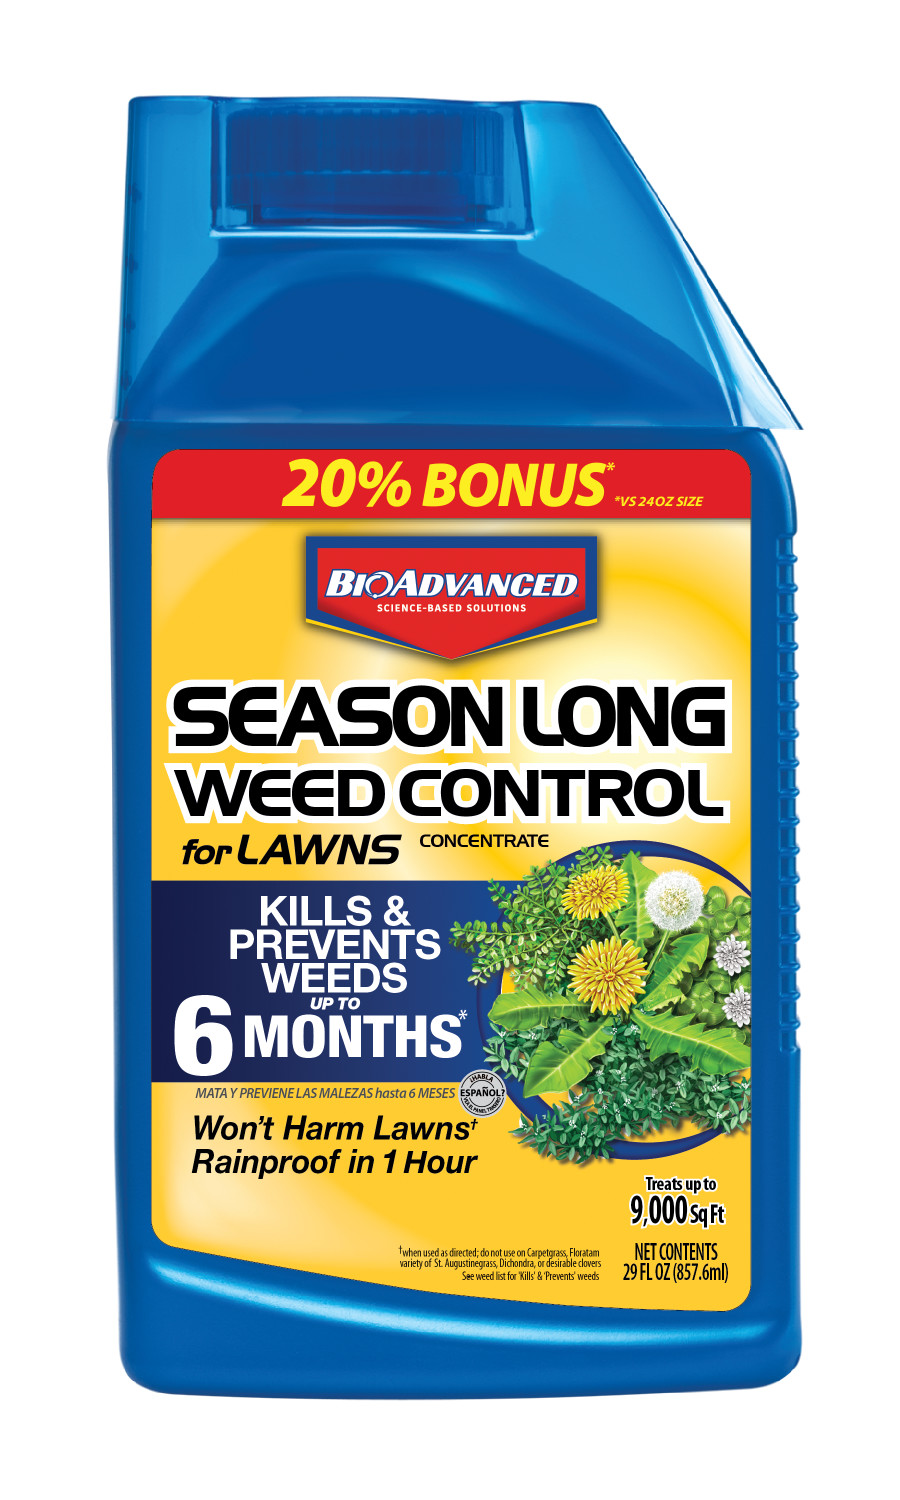 BioAdvanced Season Long Weed Control for Lawns Concentrate 8ea/29 fl oz